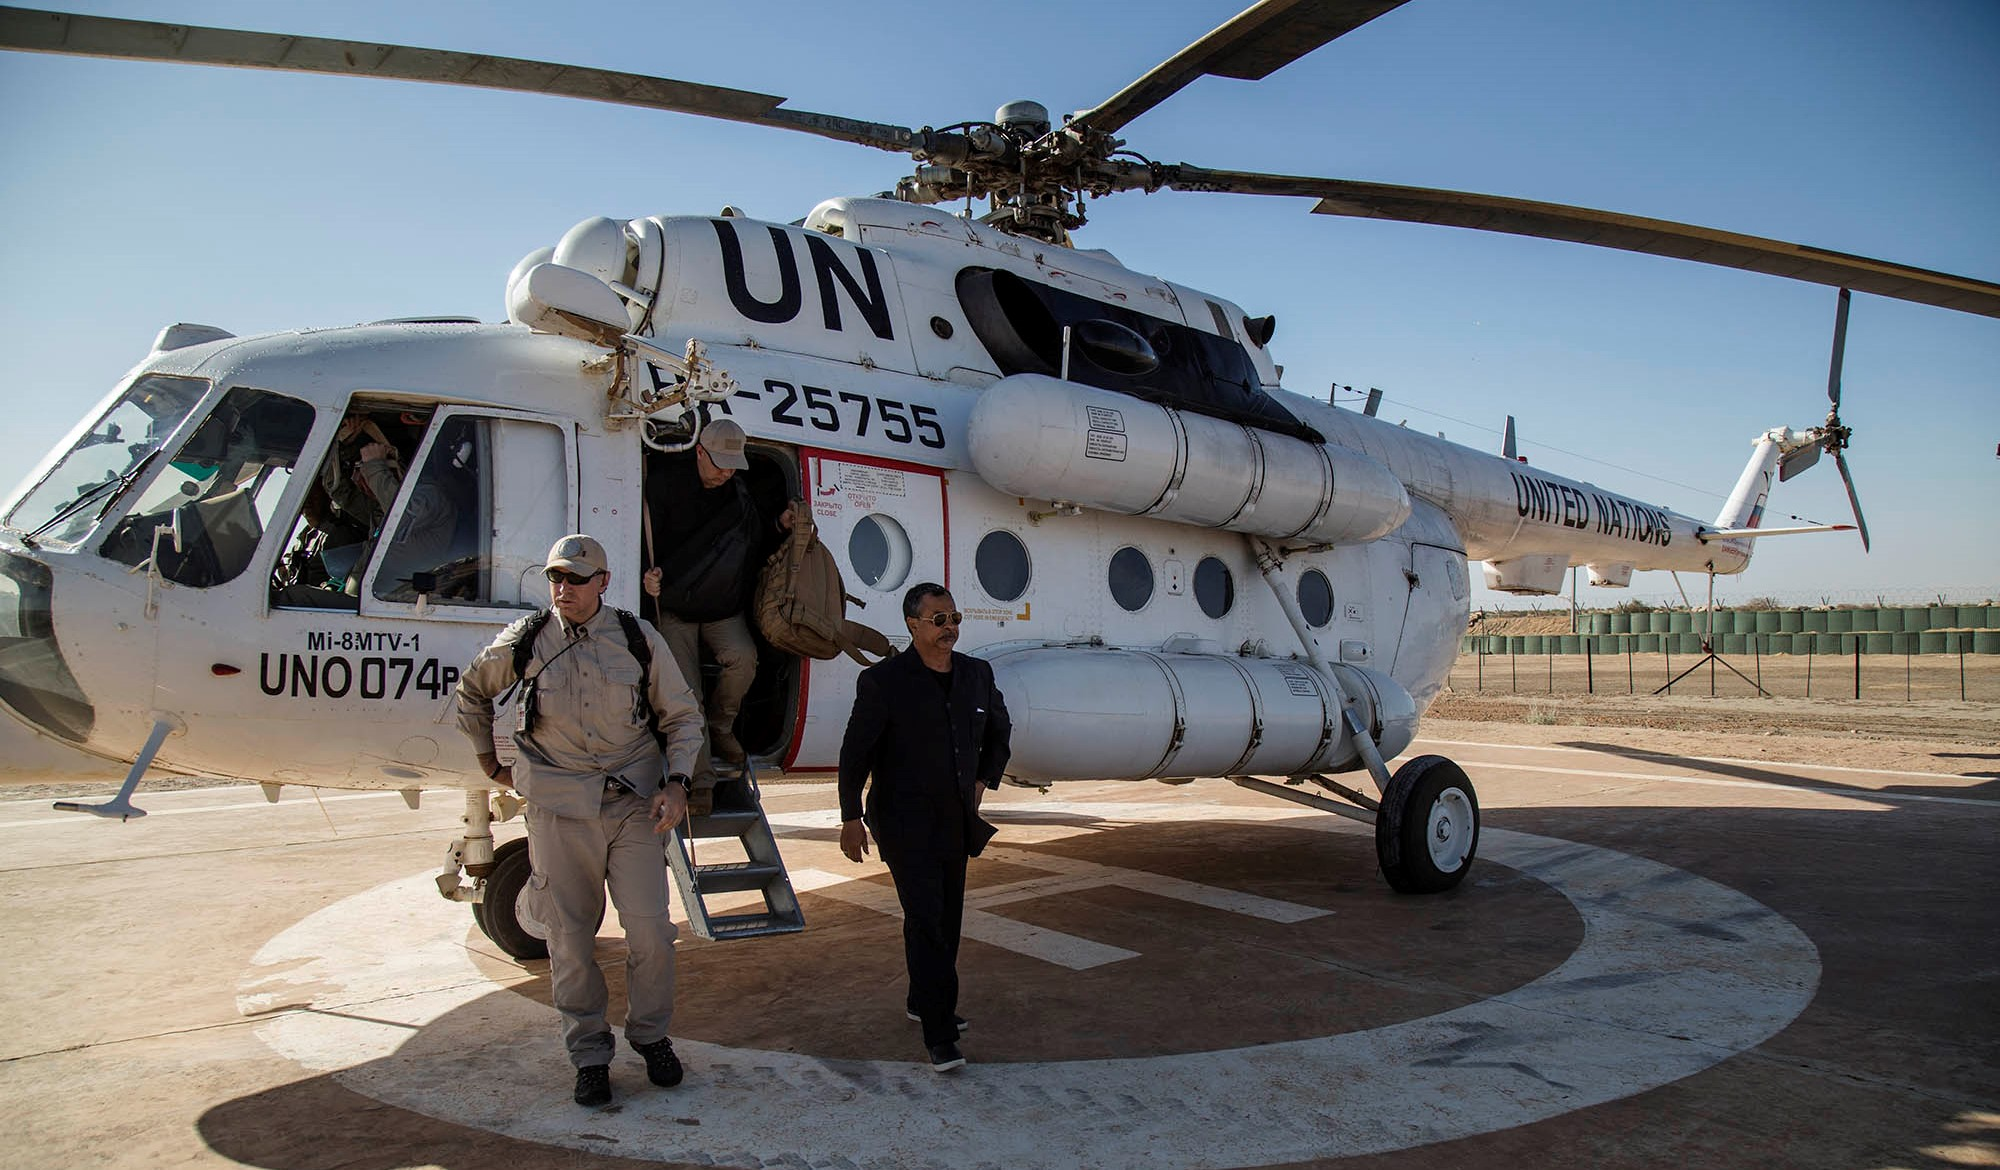 Annadif Mahamat Saleh, Special Representative of the Secretary-General, visits camp Ber 12.  By UN Photo: MINUSMA